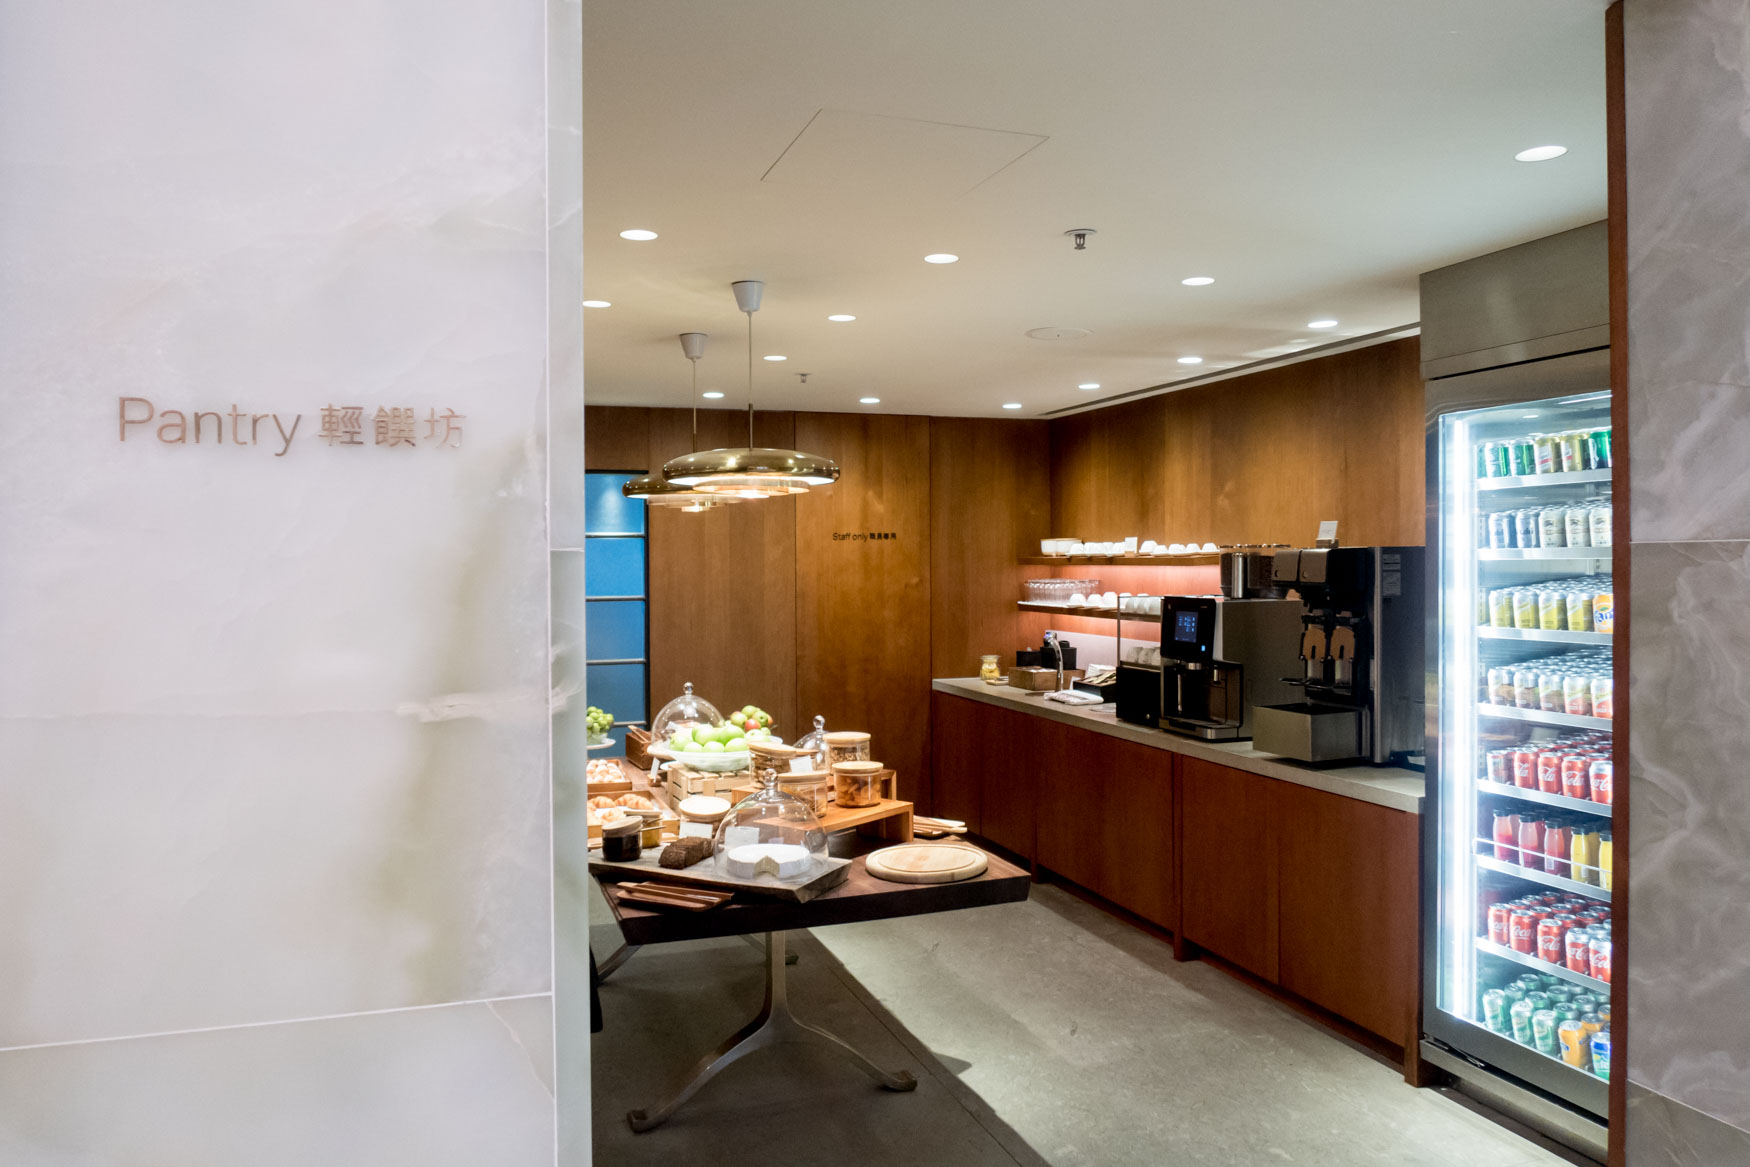 The Pantry at Cathay Pacific The Pier First